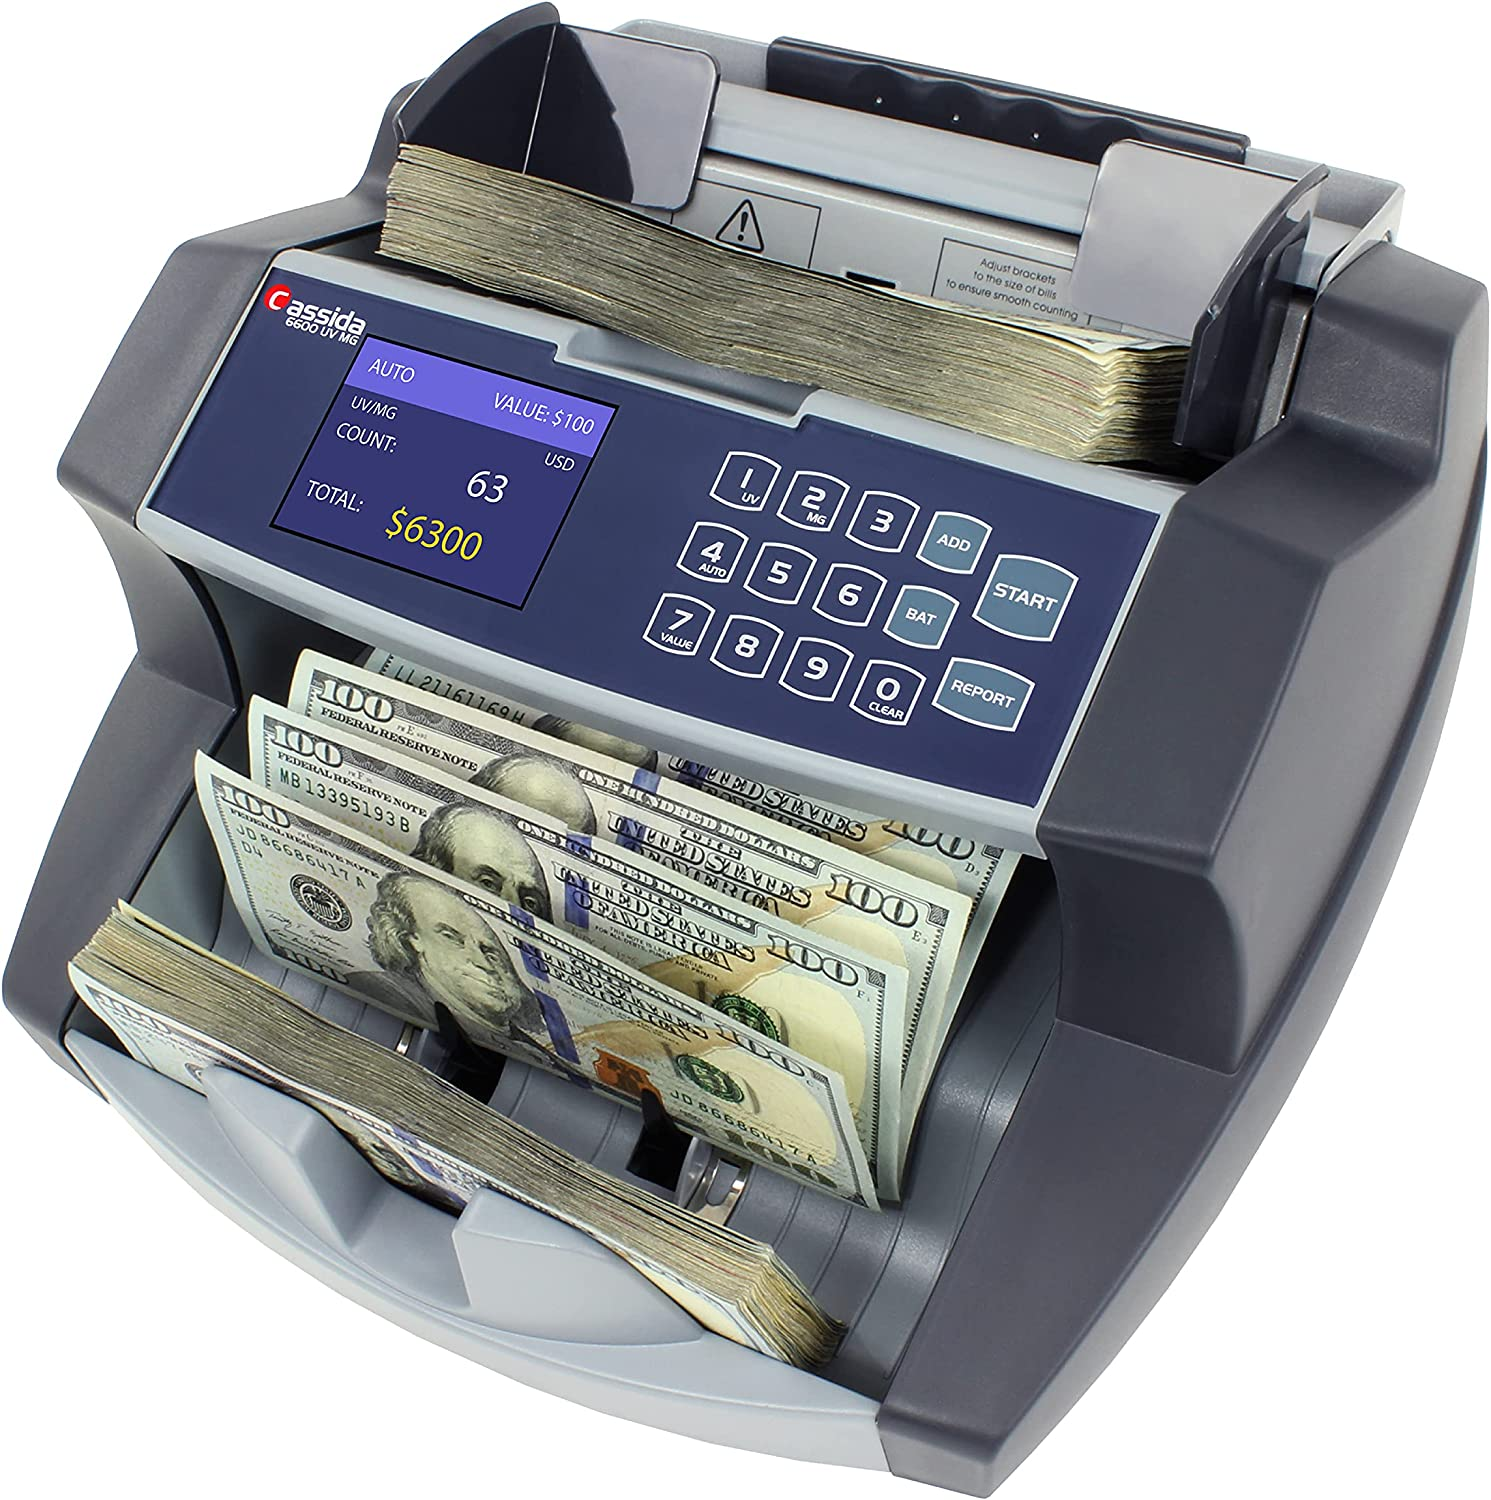 Cassida 6600 UV/MG – USA Business Grade Money Counter with UV/MG/IR Counterfeit Detection – Top Loading Bill Counting Machine w/ ValuCount, Add and Batch Modes – Fast Counting Speed 1,400 Notes/Min : Bill Counters : Office Products